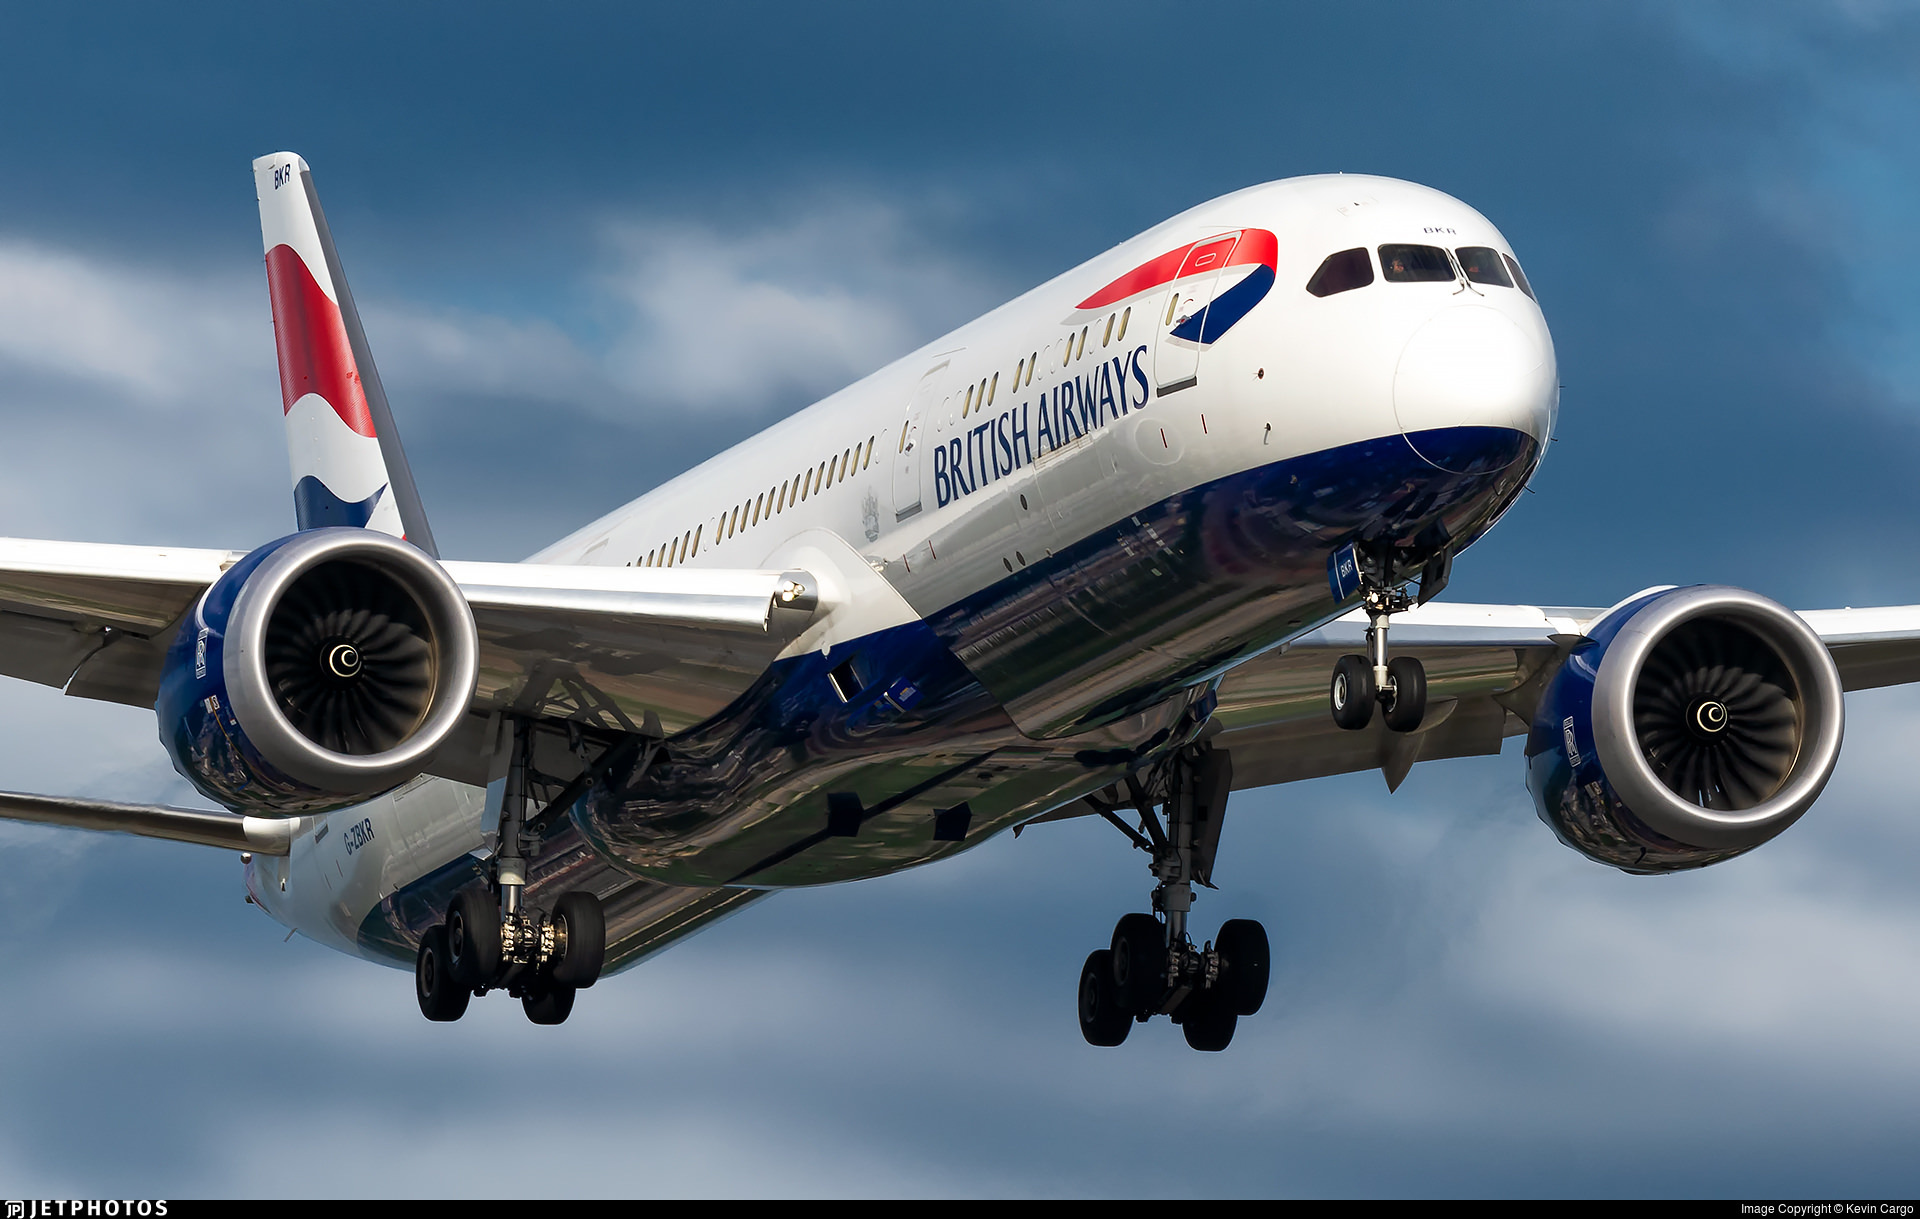 British Airways 787 landing in Chicago